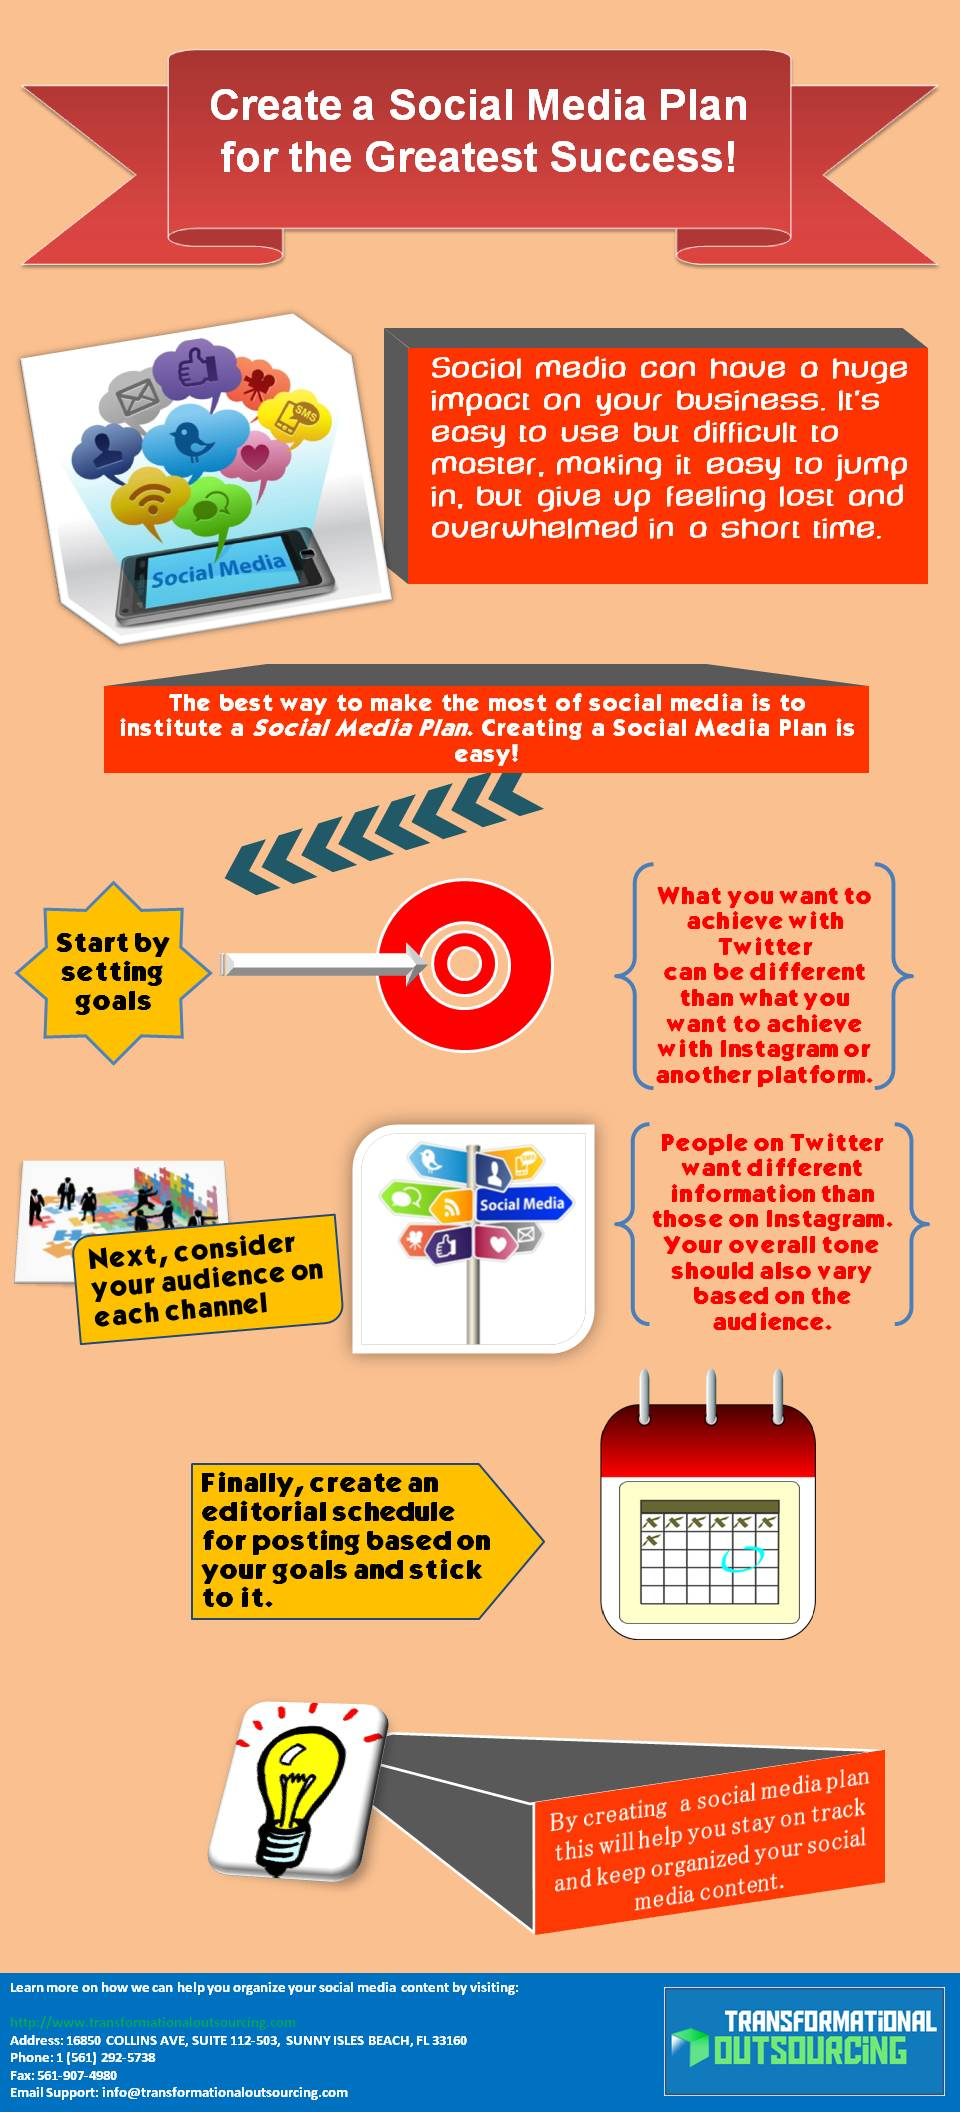 TOI_Infographics_Create a Social Media Plan_Oct2015_Final